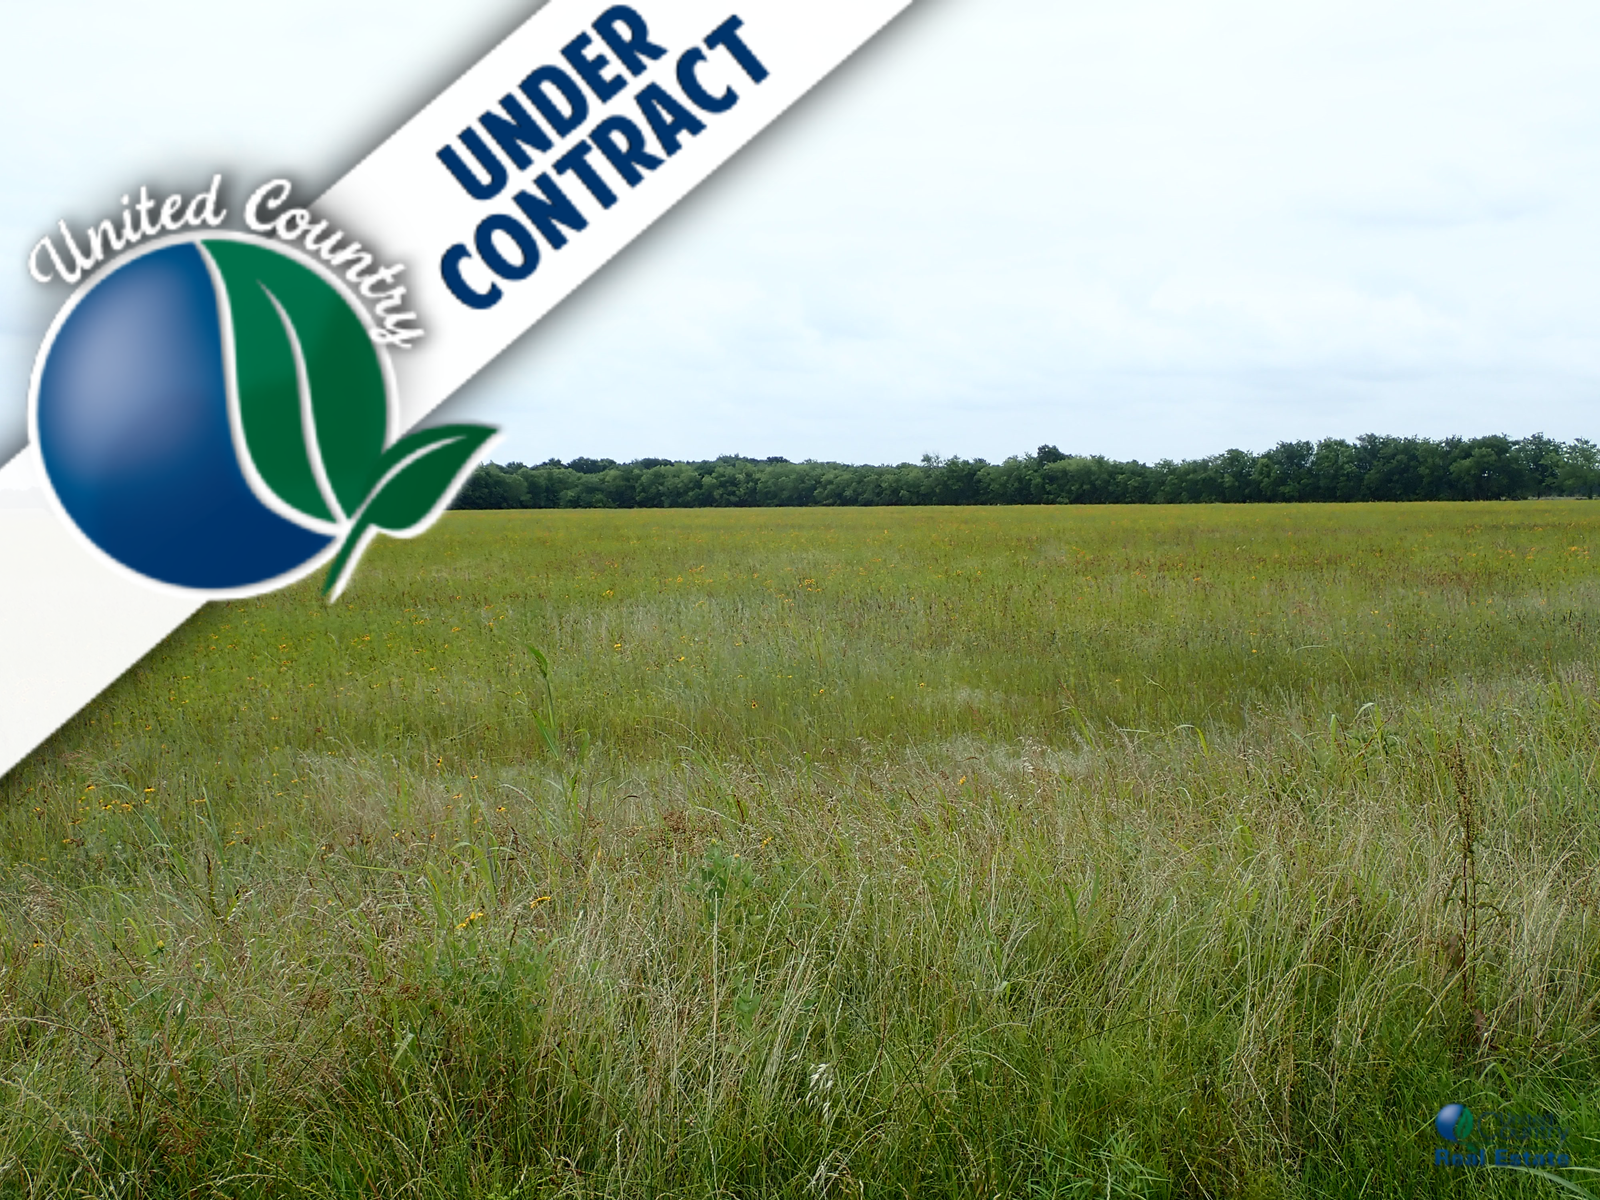 North East Texas Land For Sale in Commerce